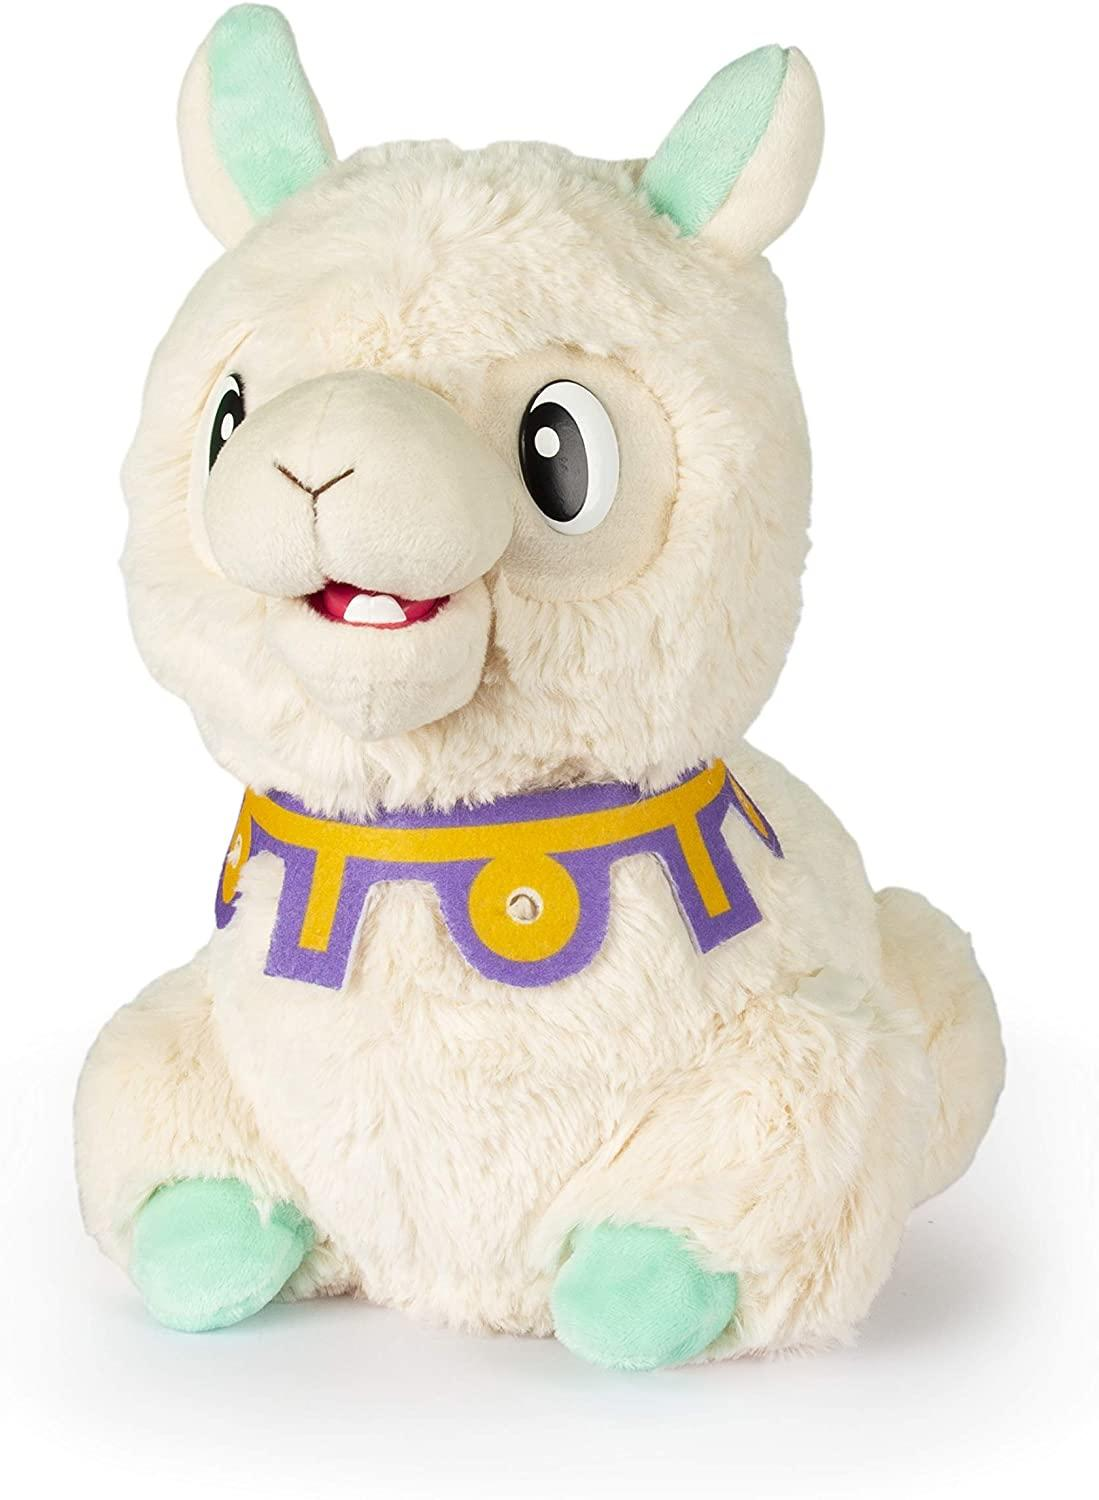 Club Petz Spitzy Llama Interactive Plush1